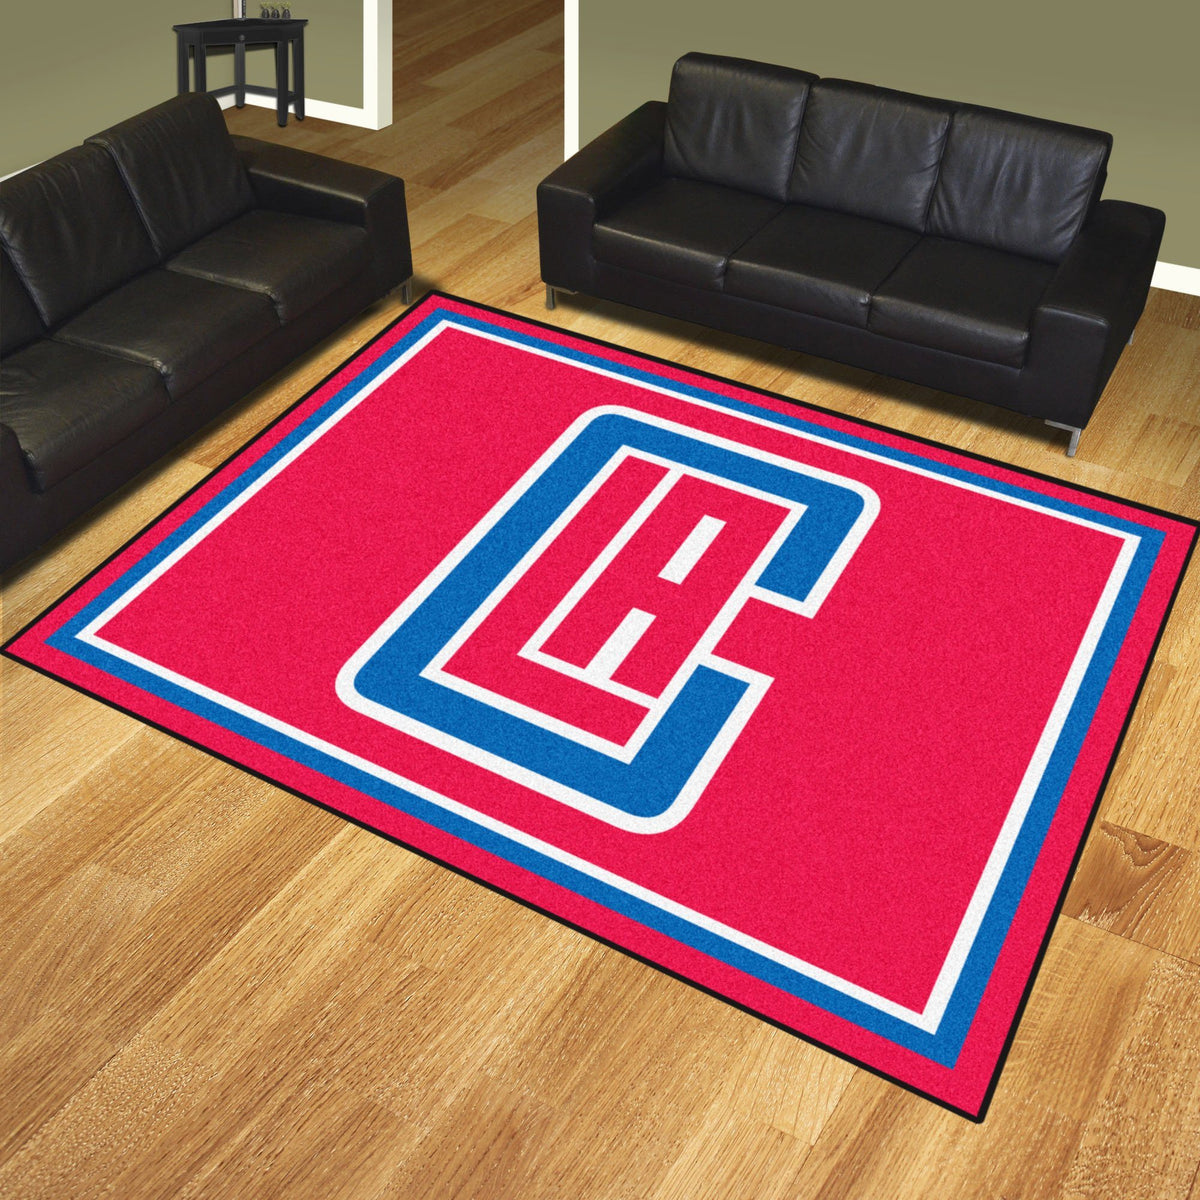 NBA - 8' x 10' Rug NBA Mats, Plush Rugs, 8x10 Rug, NBA, Home Fan Mats Los Angeles Clippers